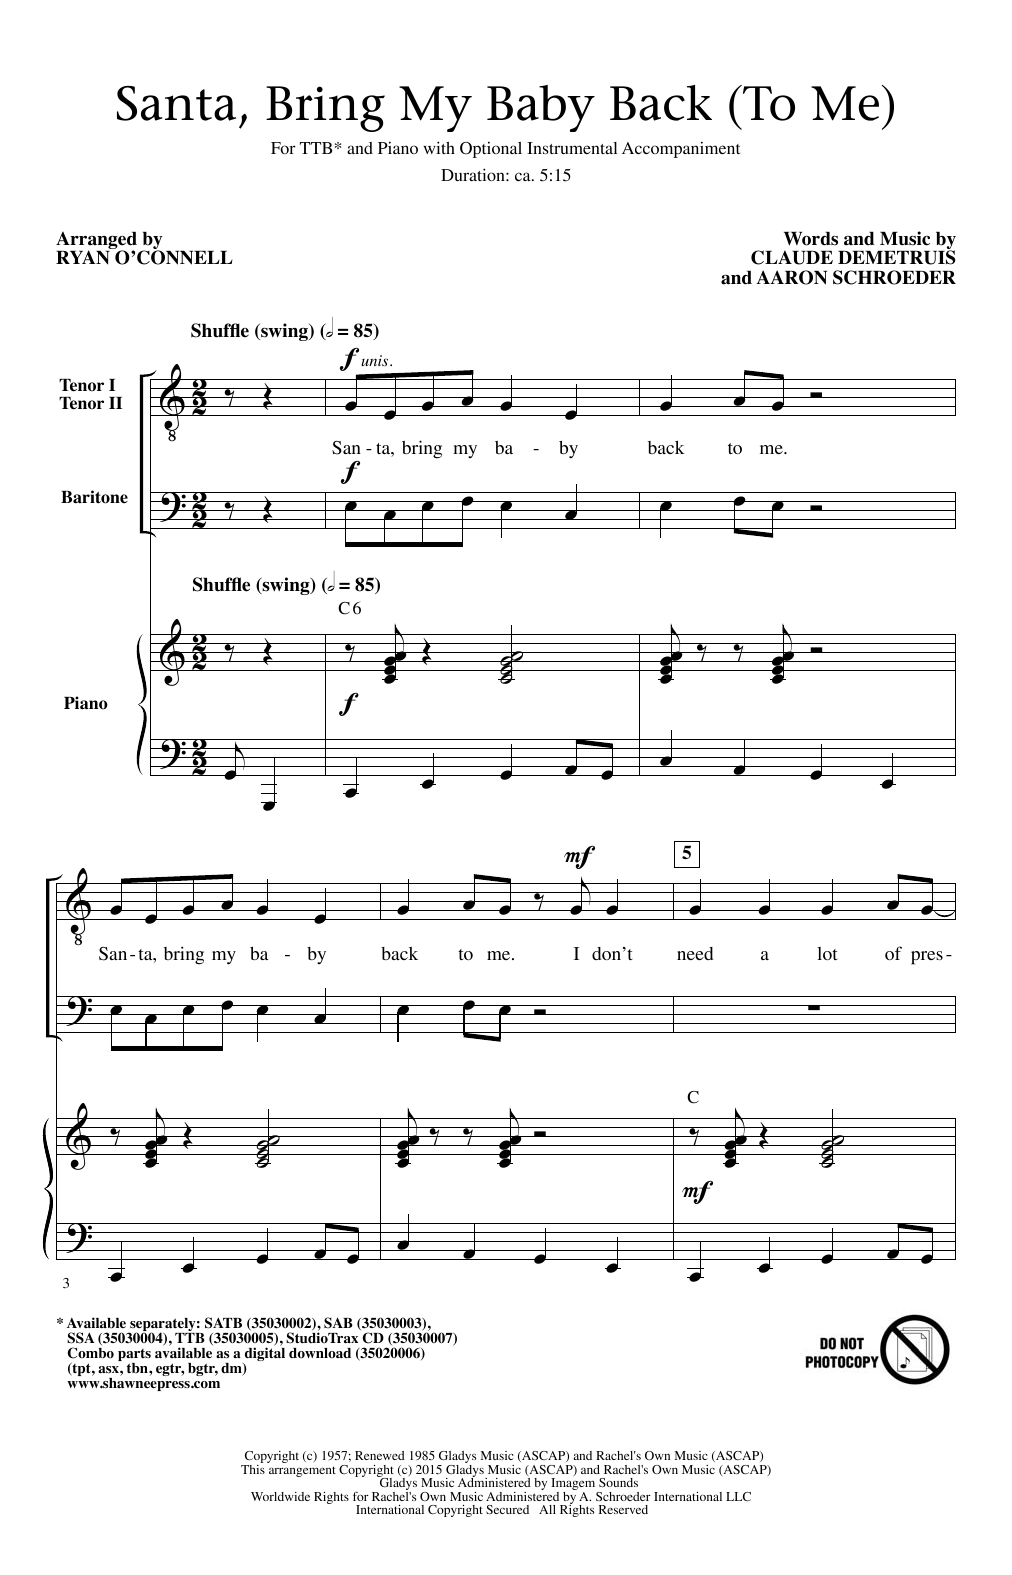 Santa, Bring My Baby Back (To Me) Sheet Music